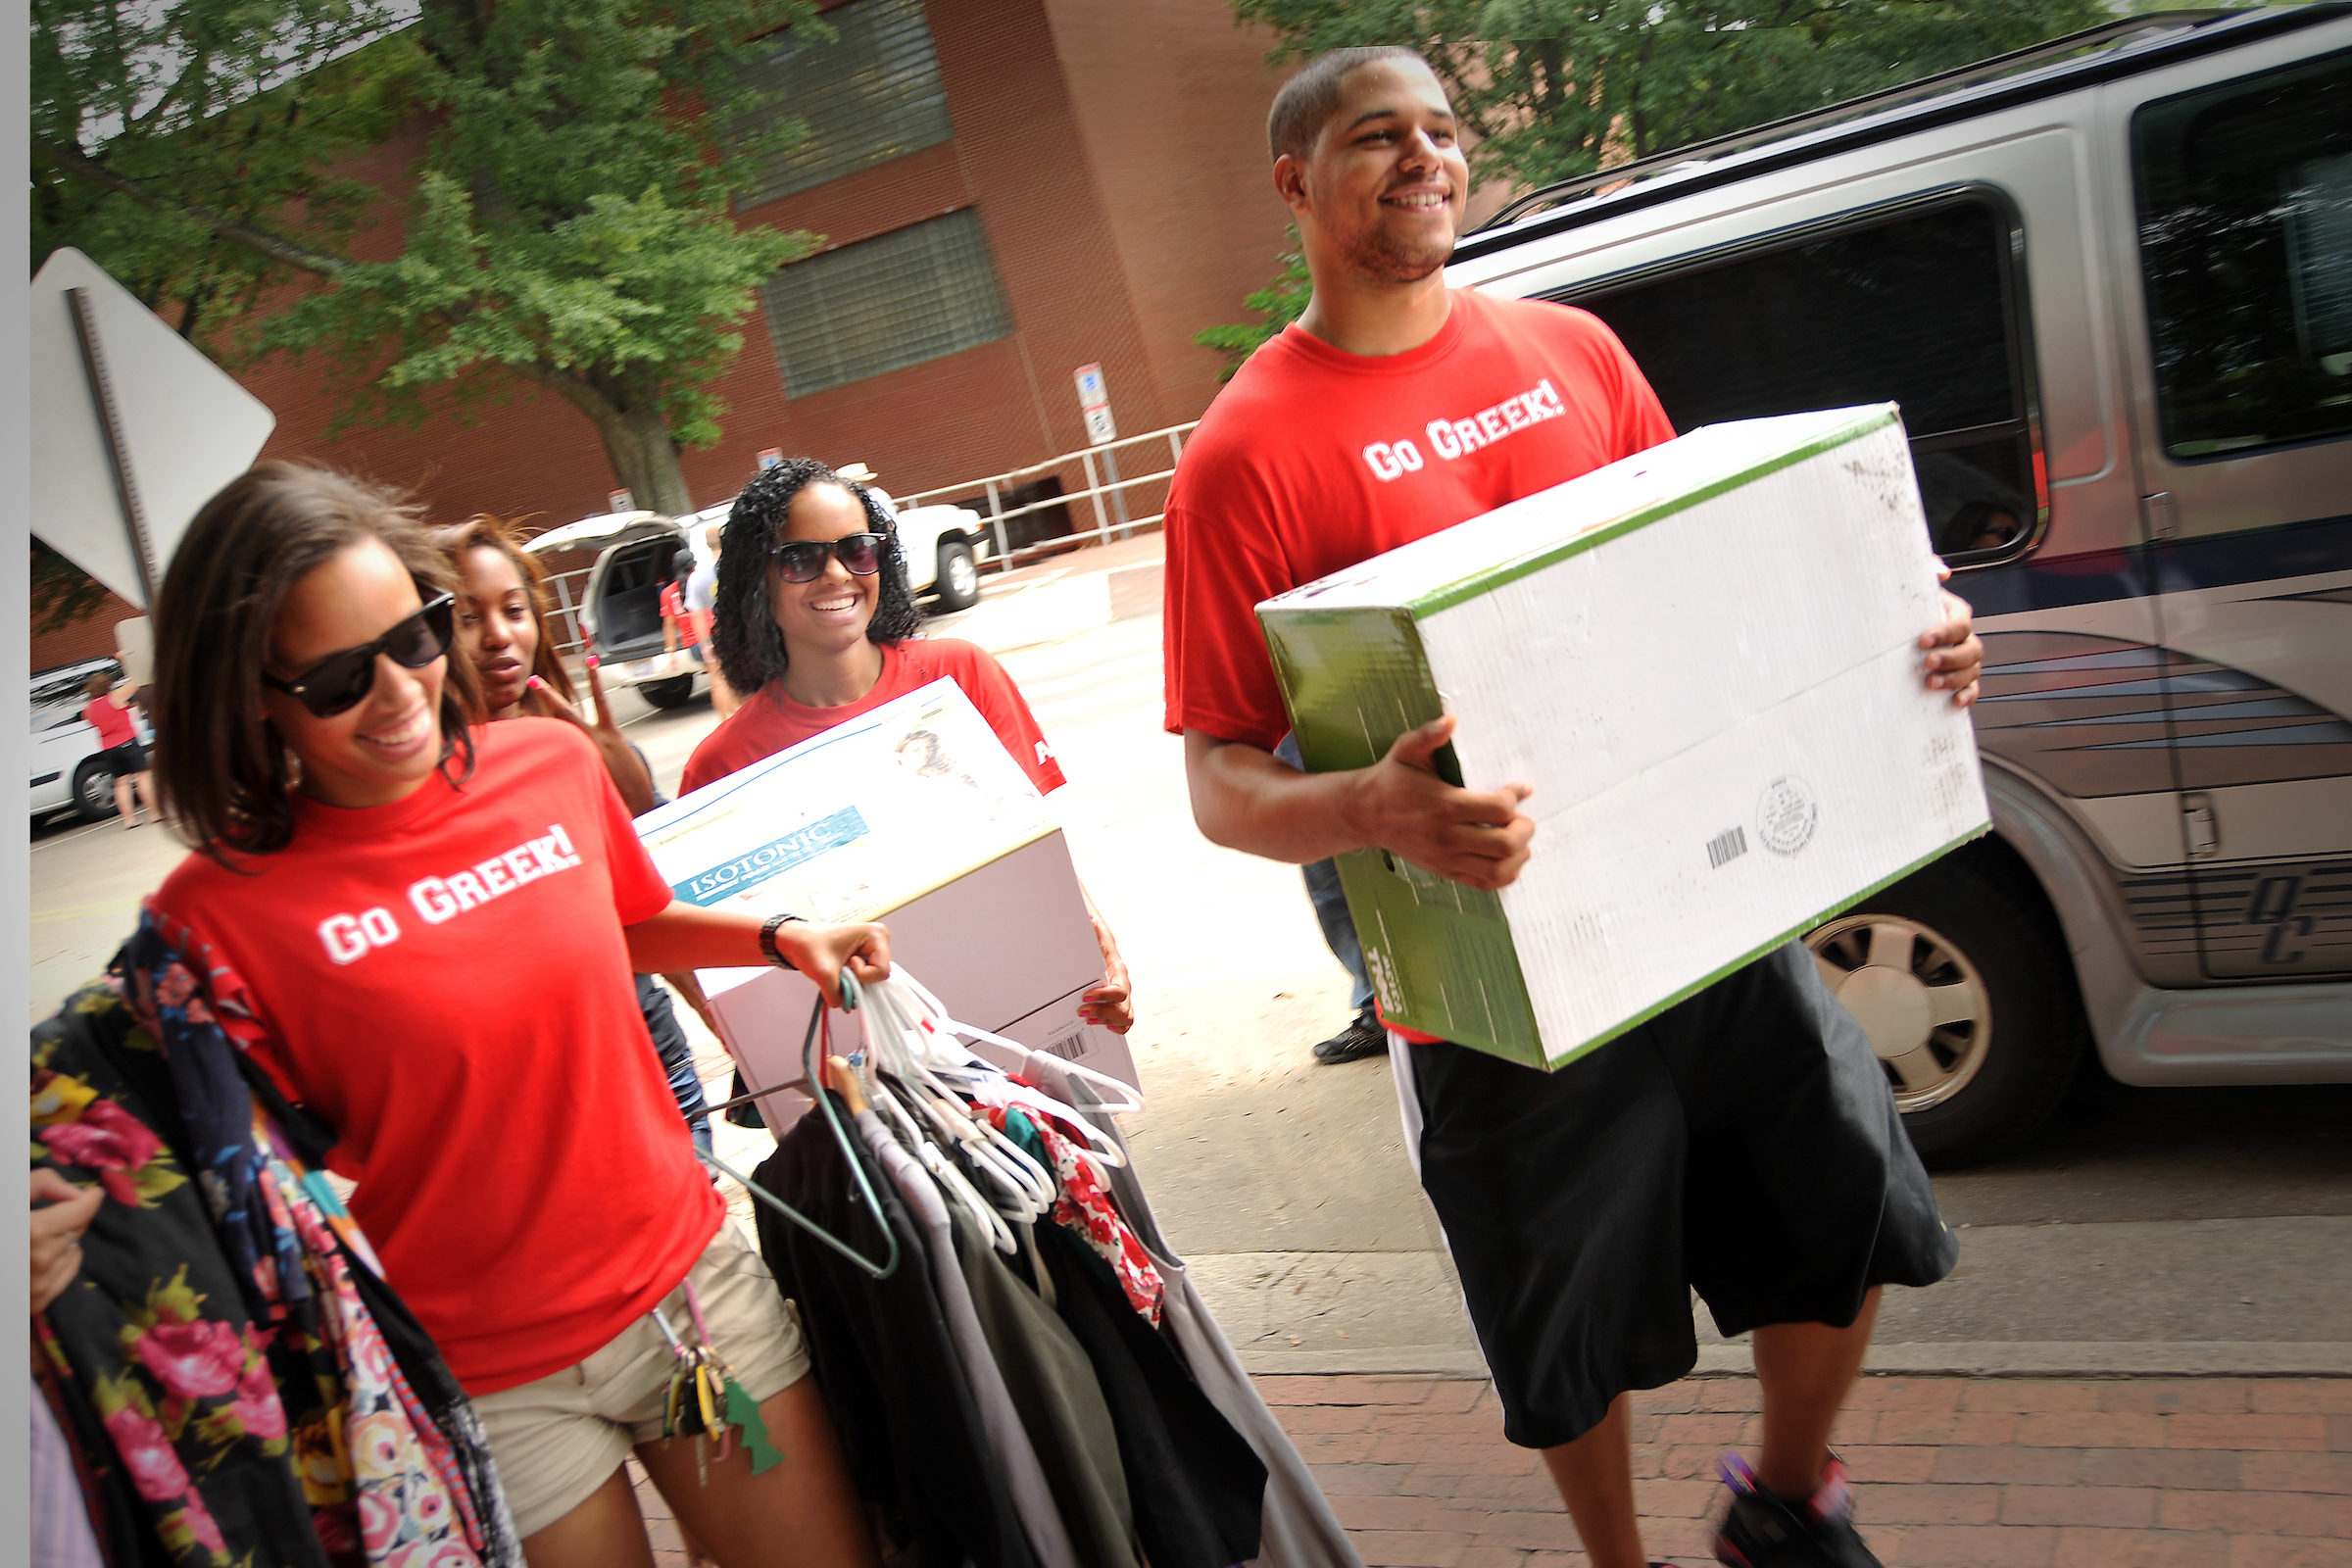 Fraternity and Sorority students help with move in to illstruate service opportunities on campus.